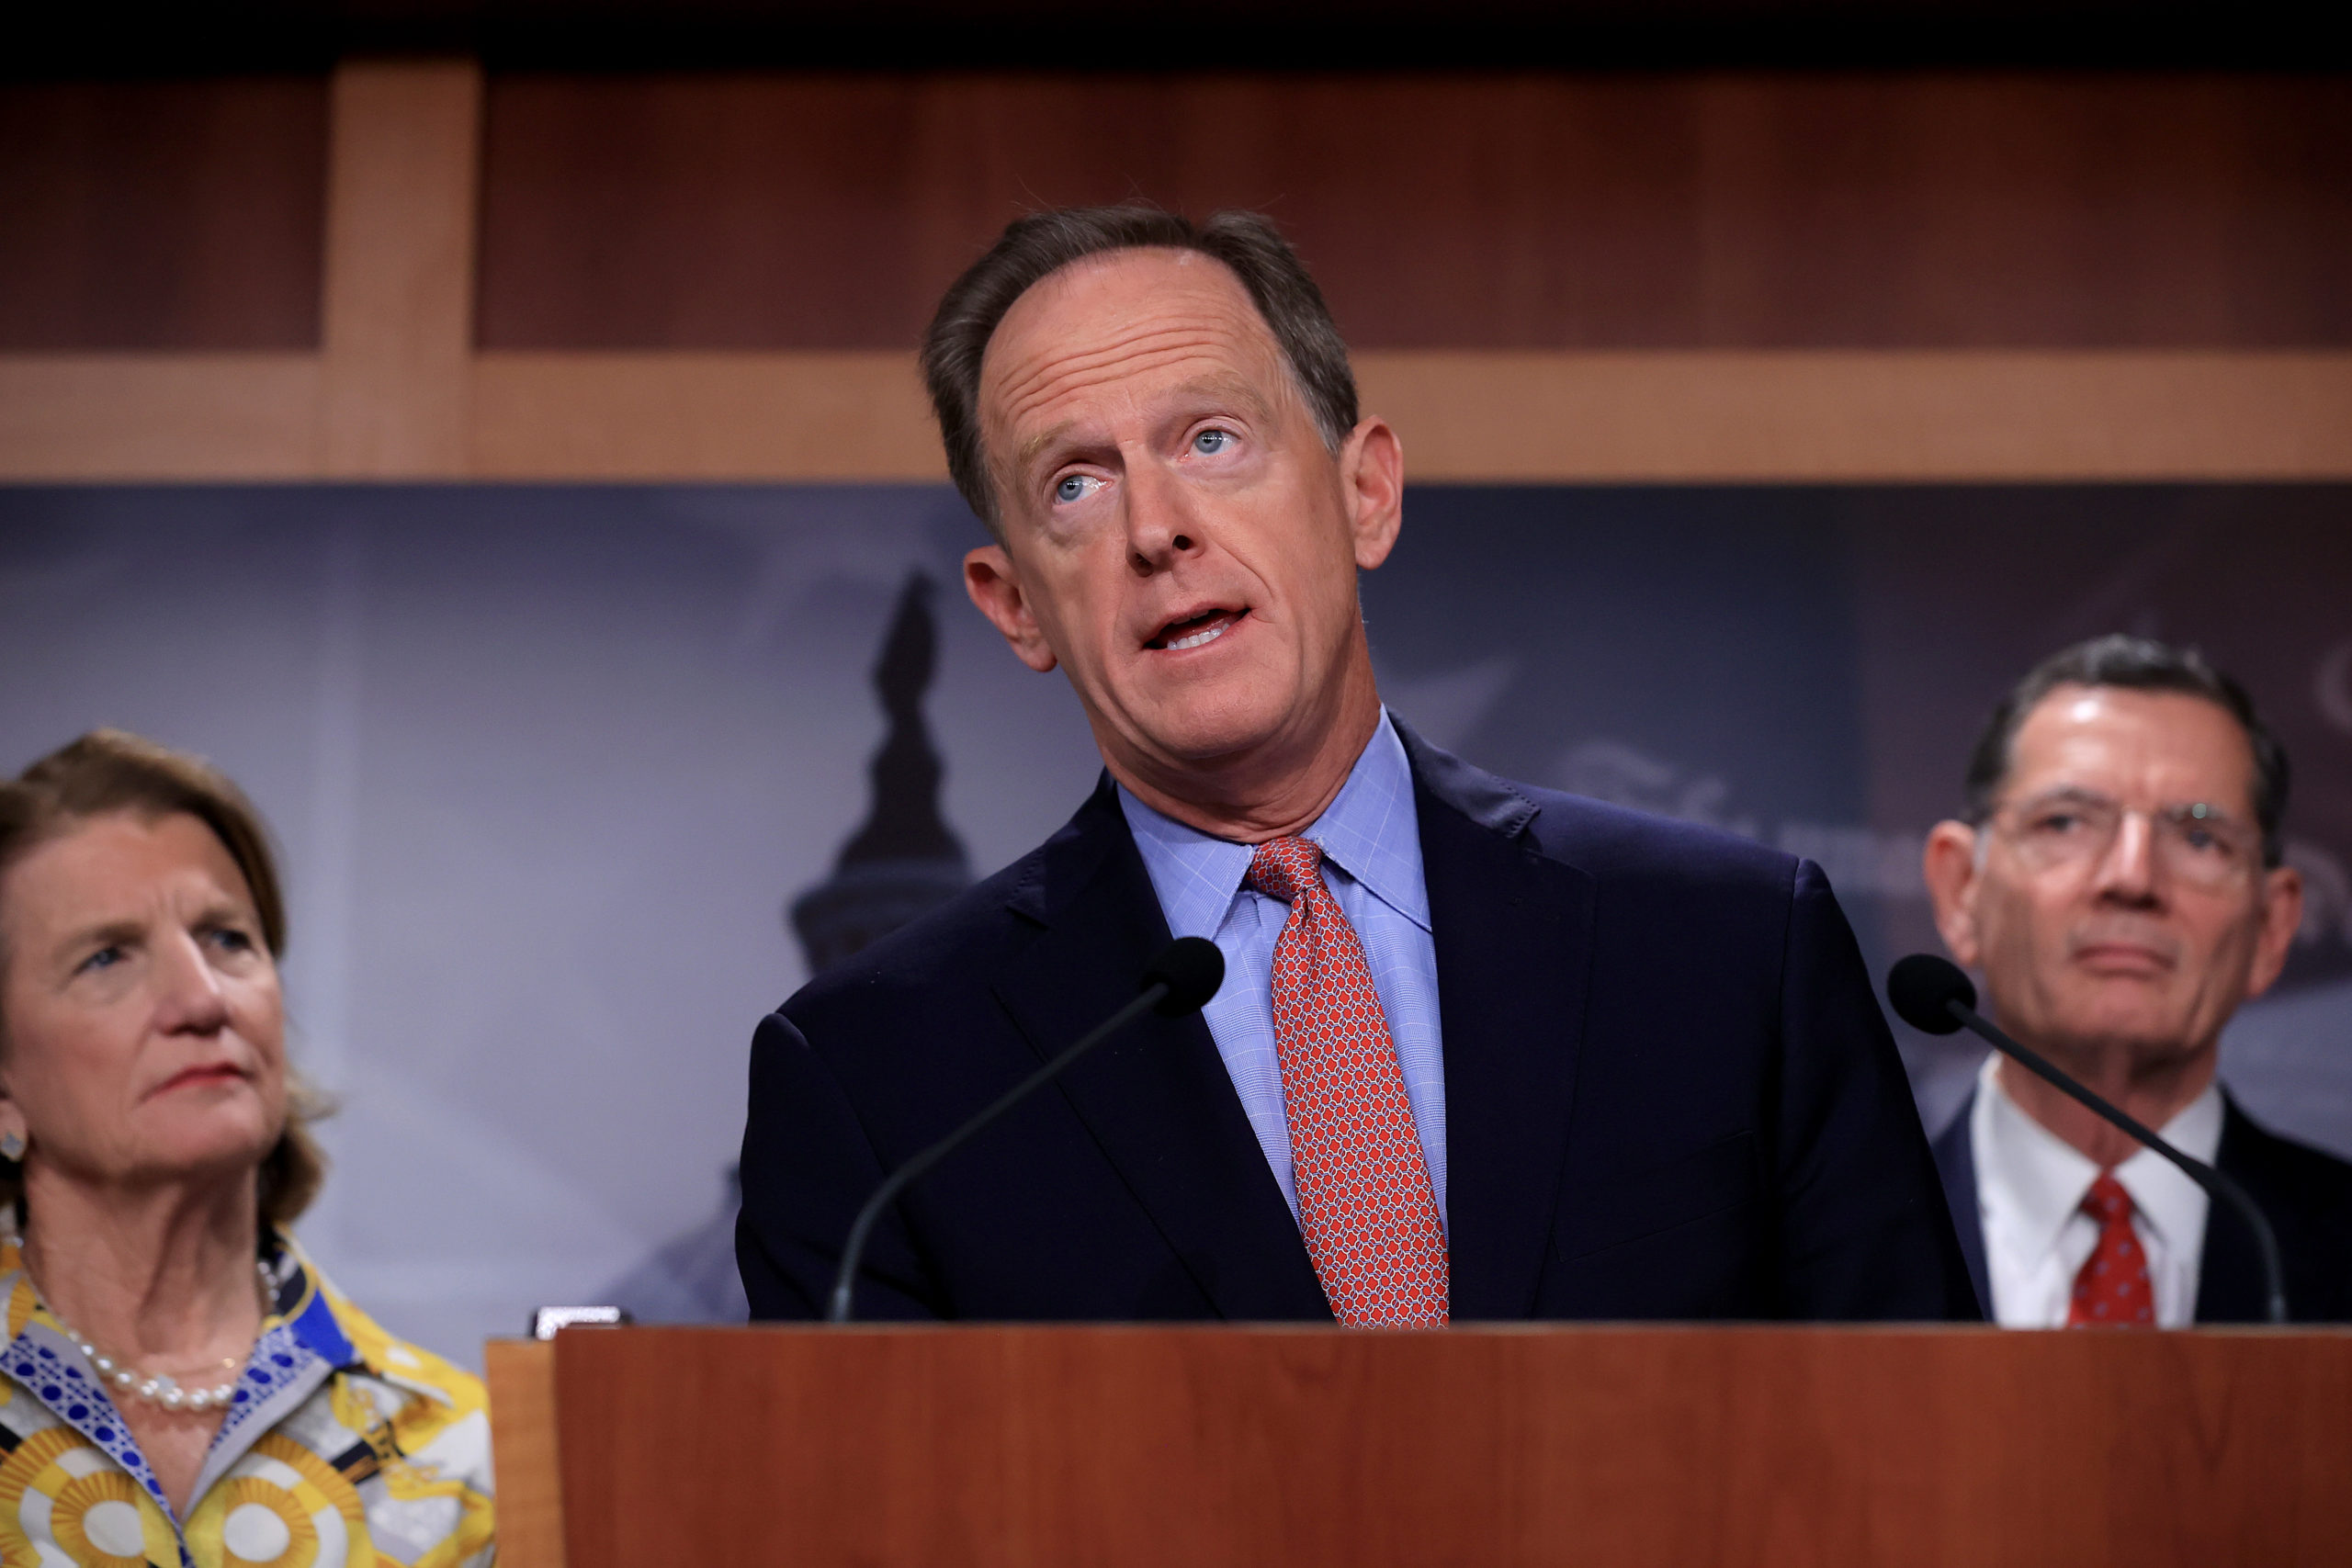 Sen. Pat Toomey speaks during a news conference on May 27. (Chip Somodevilla/Getty Images)